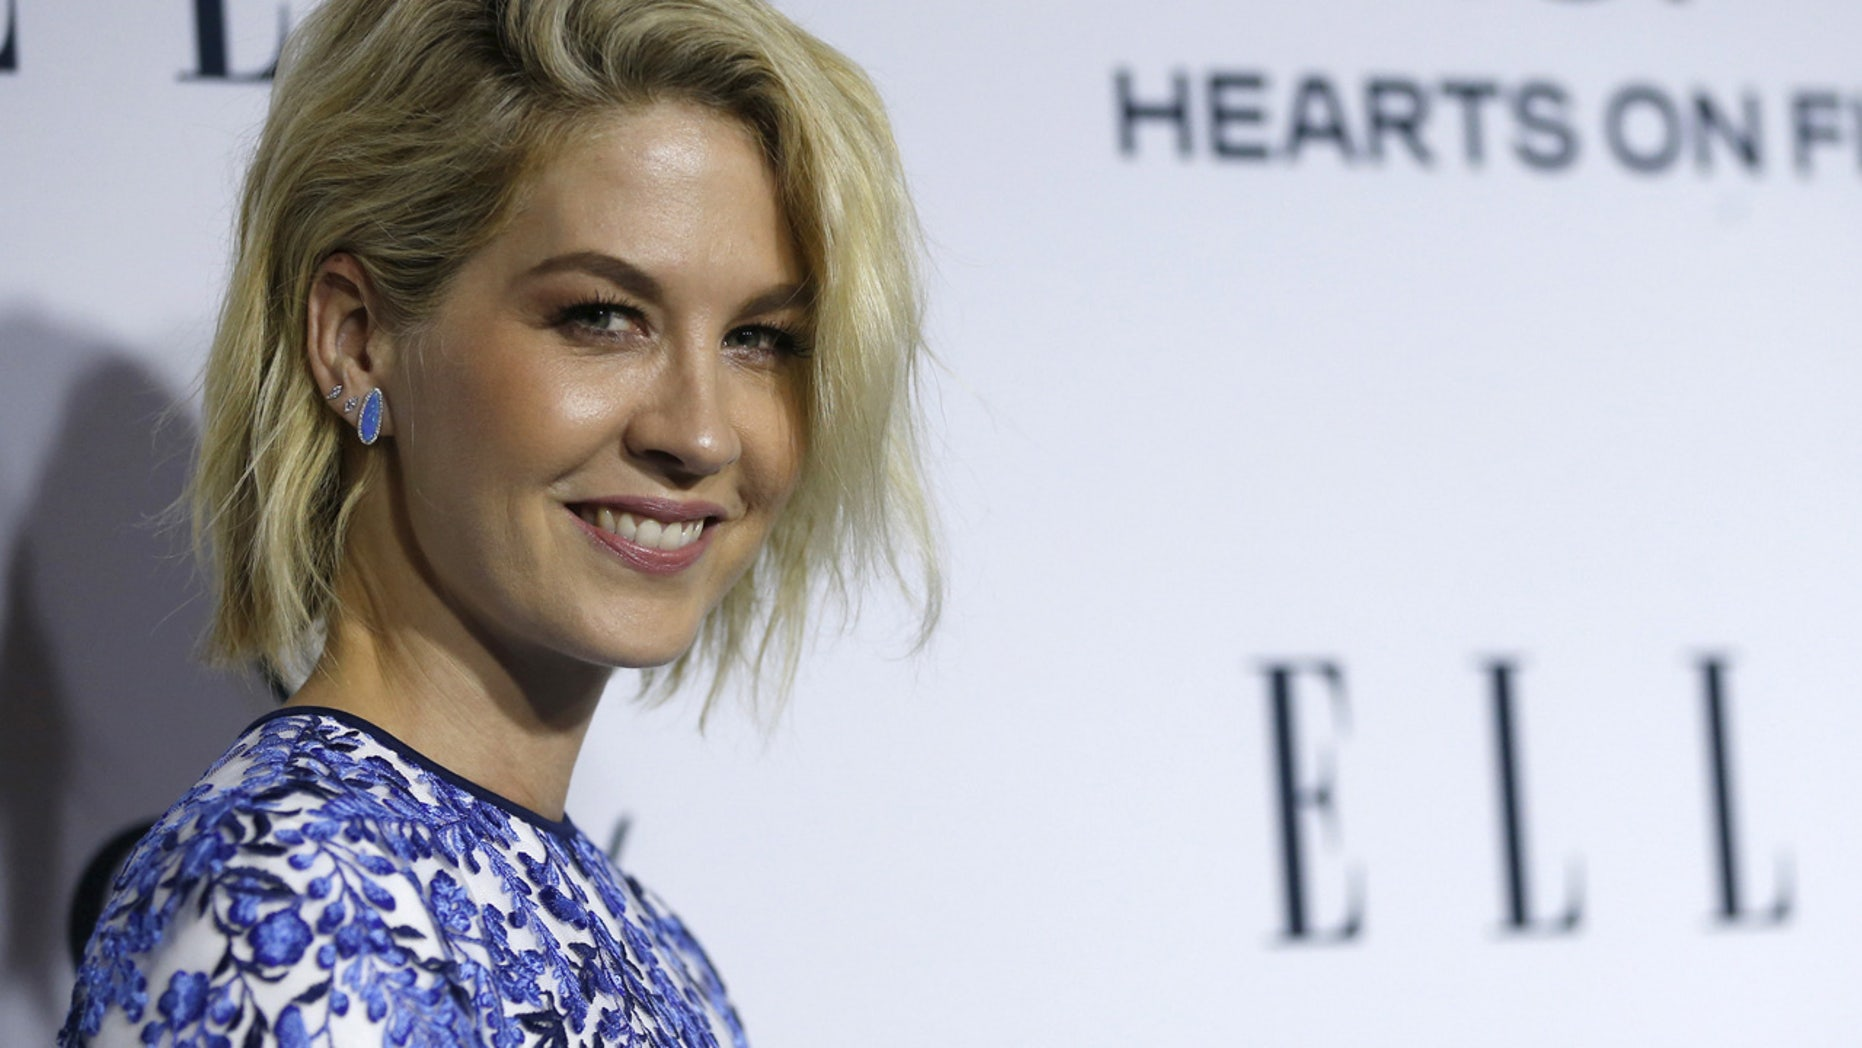 Actress Jenna Elfman poses at ELLE's Annual Women in Television dinner in Los Angeles, California January 20, 2016.  REUTERS/Mario Anzuoni - RTX23BNA